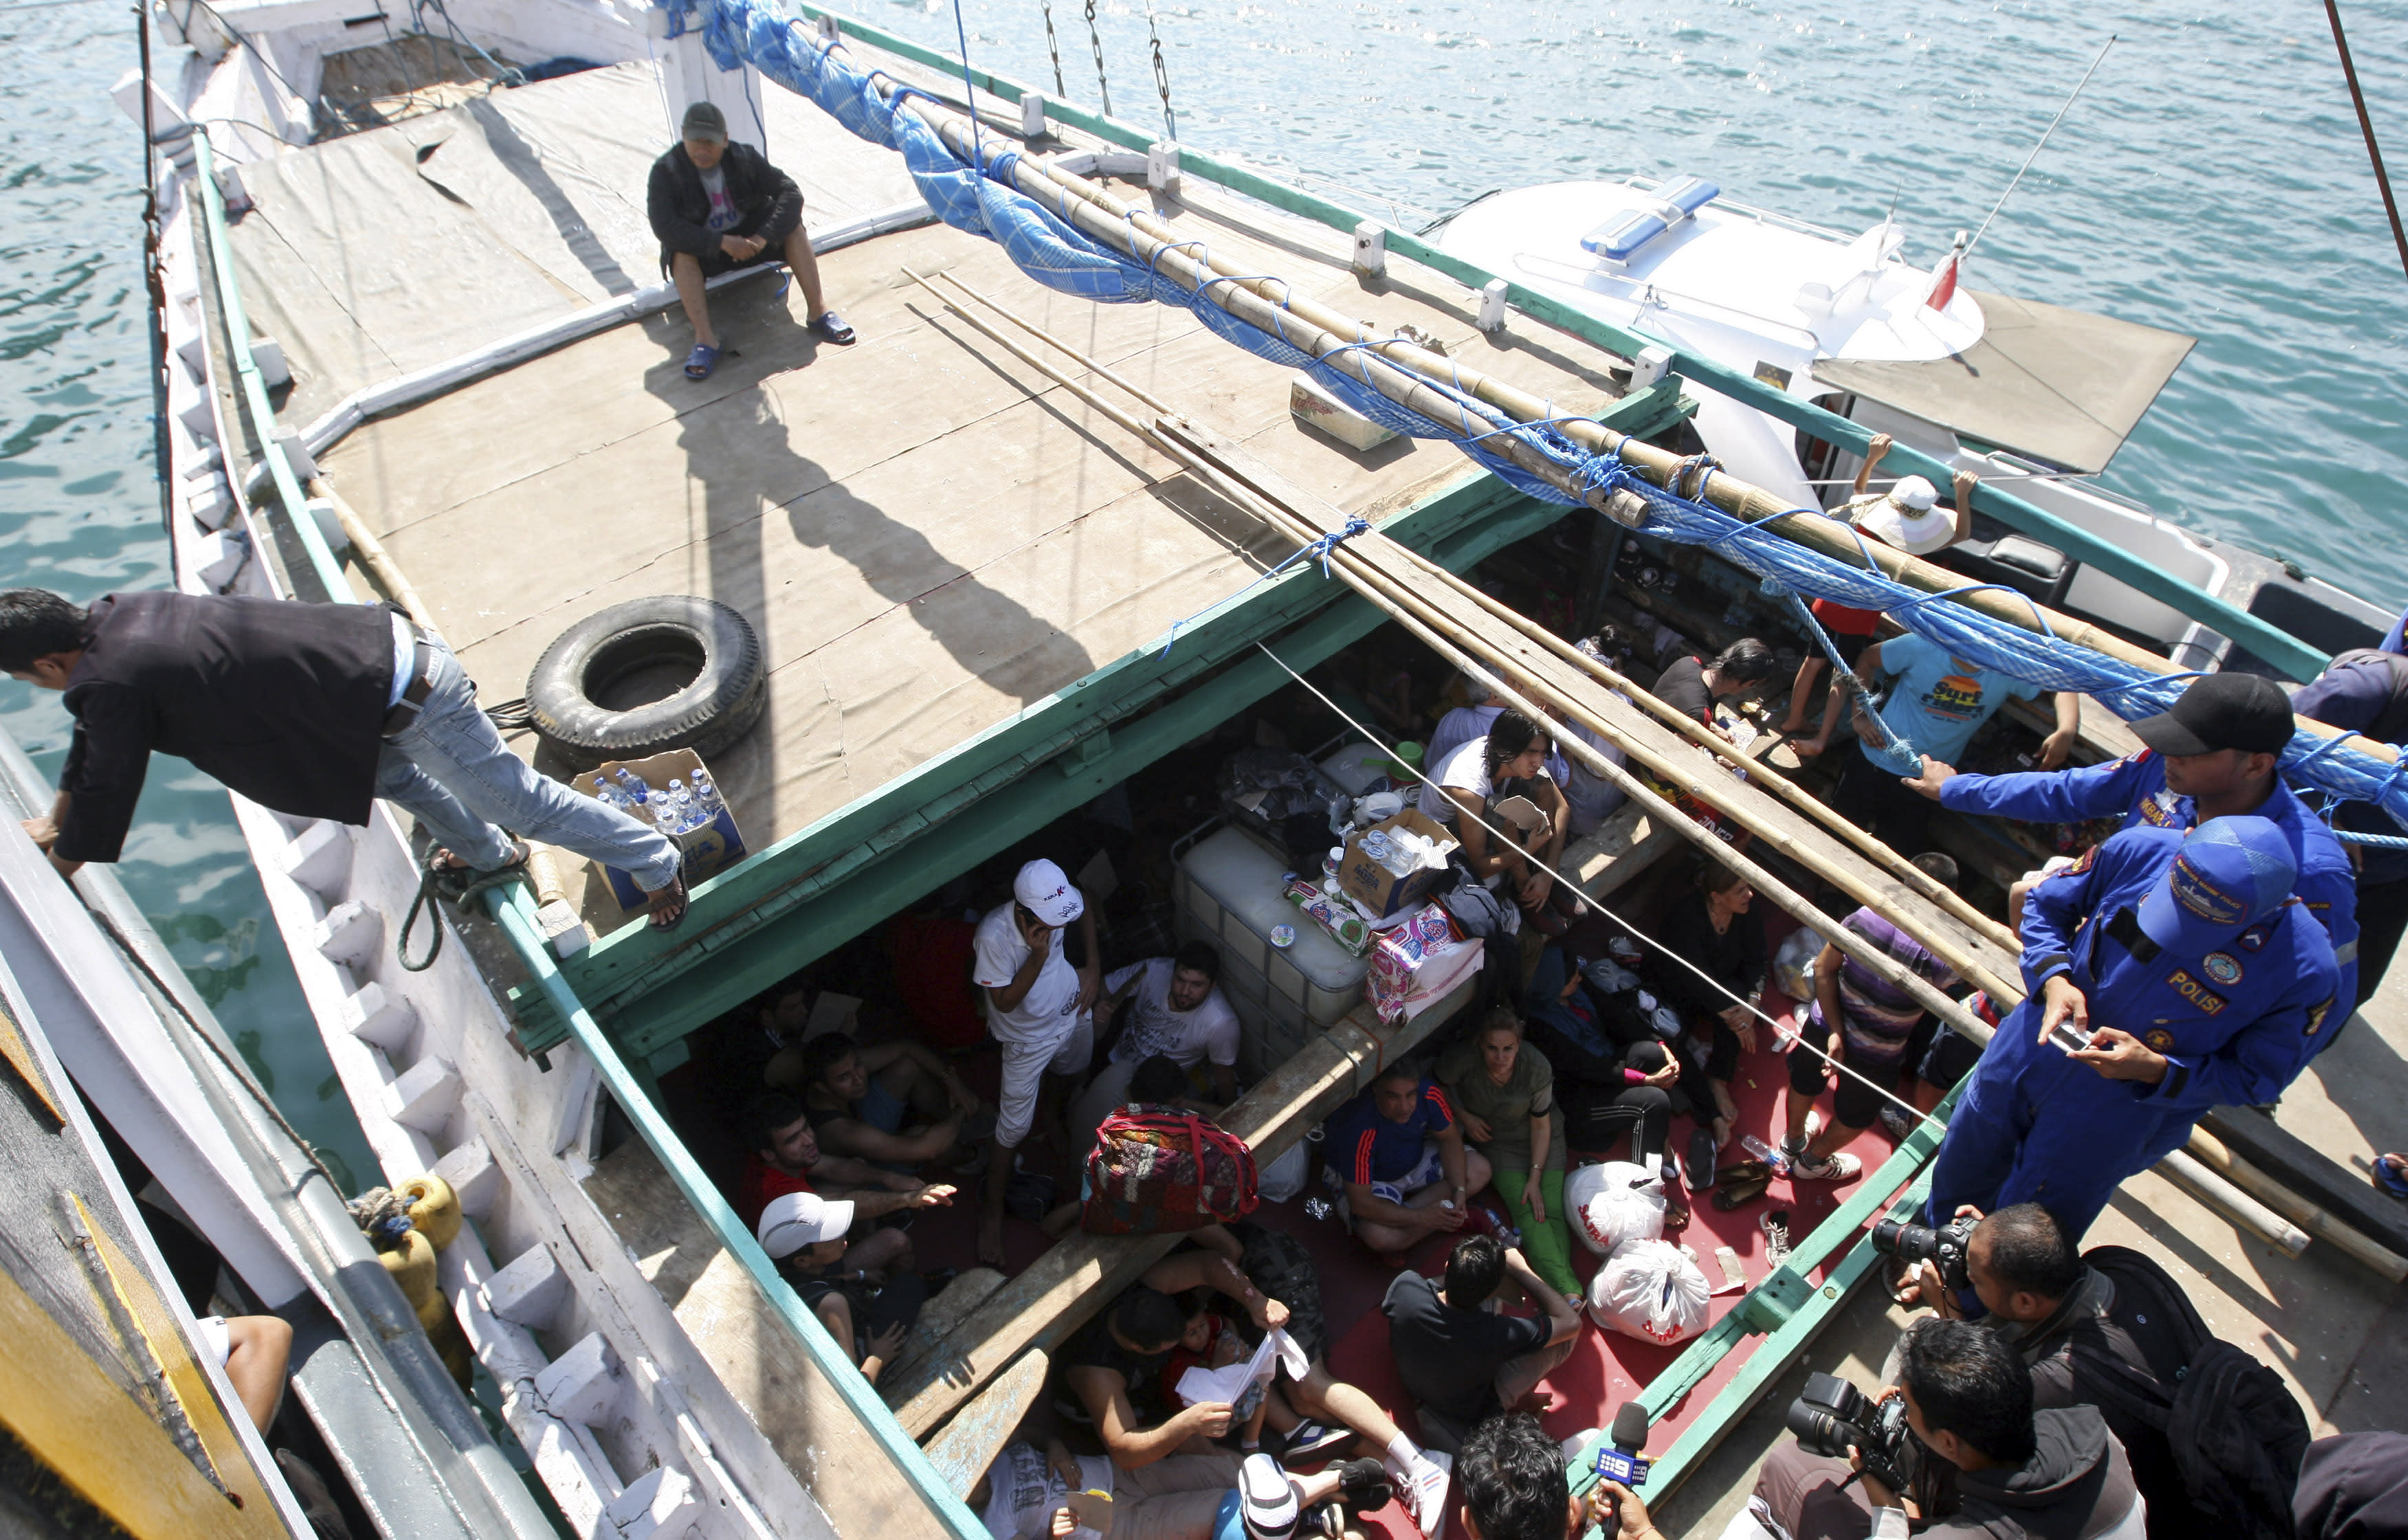 Australia in talks to send refugees to the Philippines